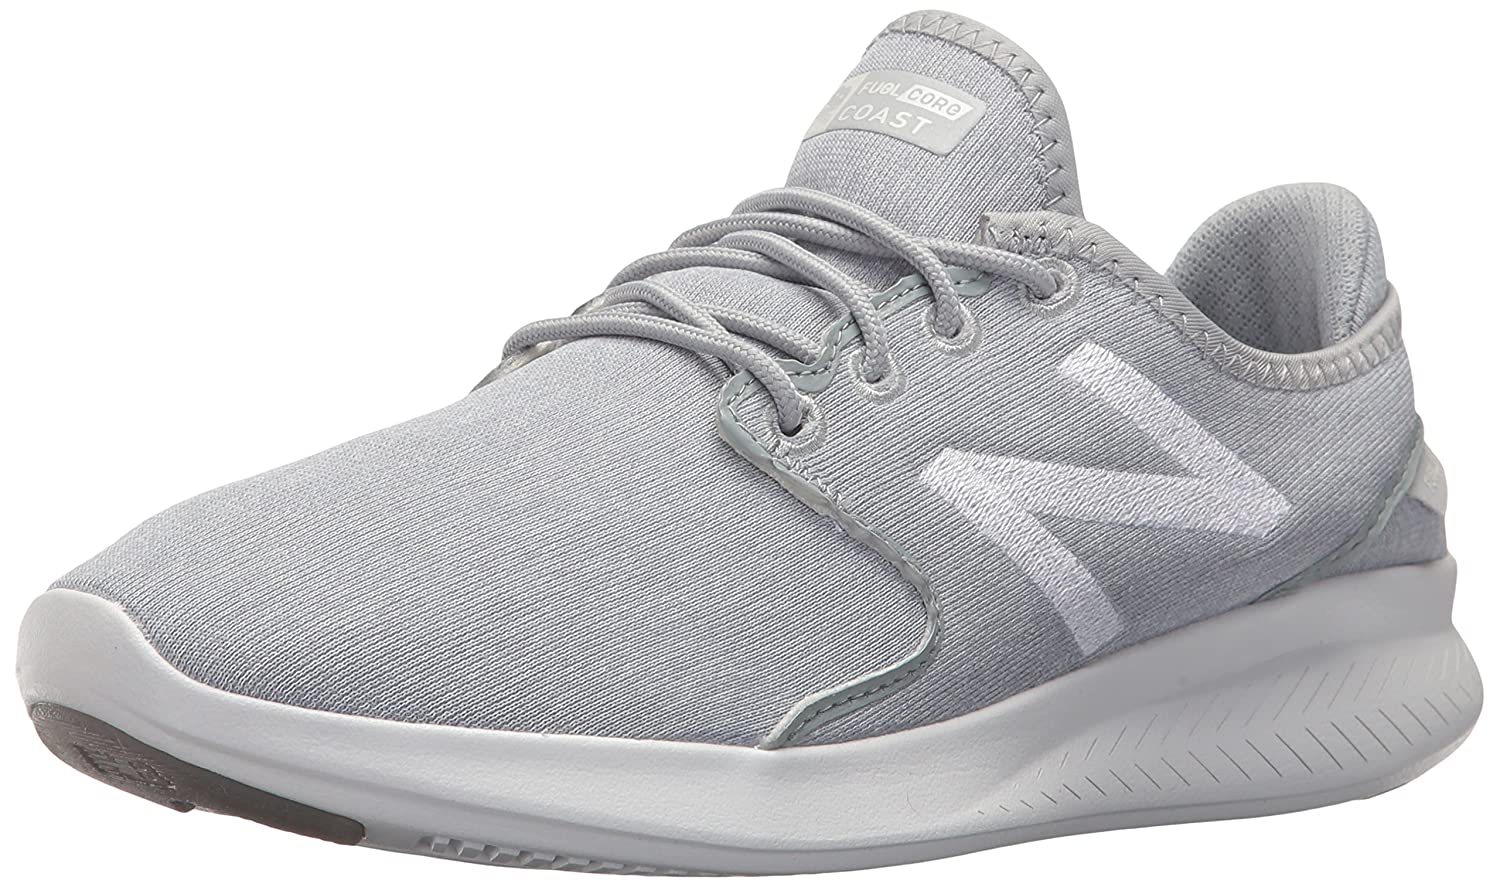 New Balance Women's Coast V3 Running Shoe B01N0UK9U5 9 D US|Silver